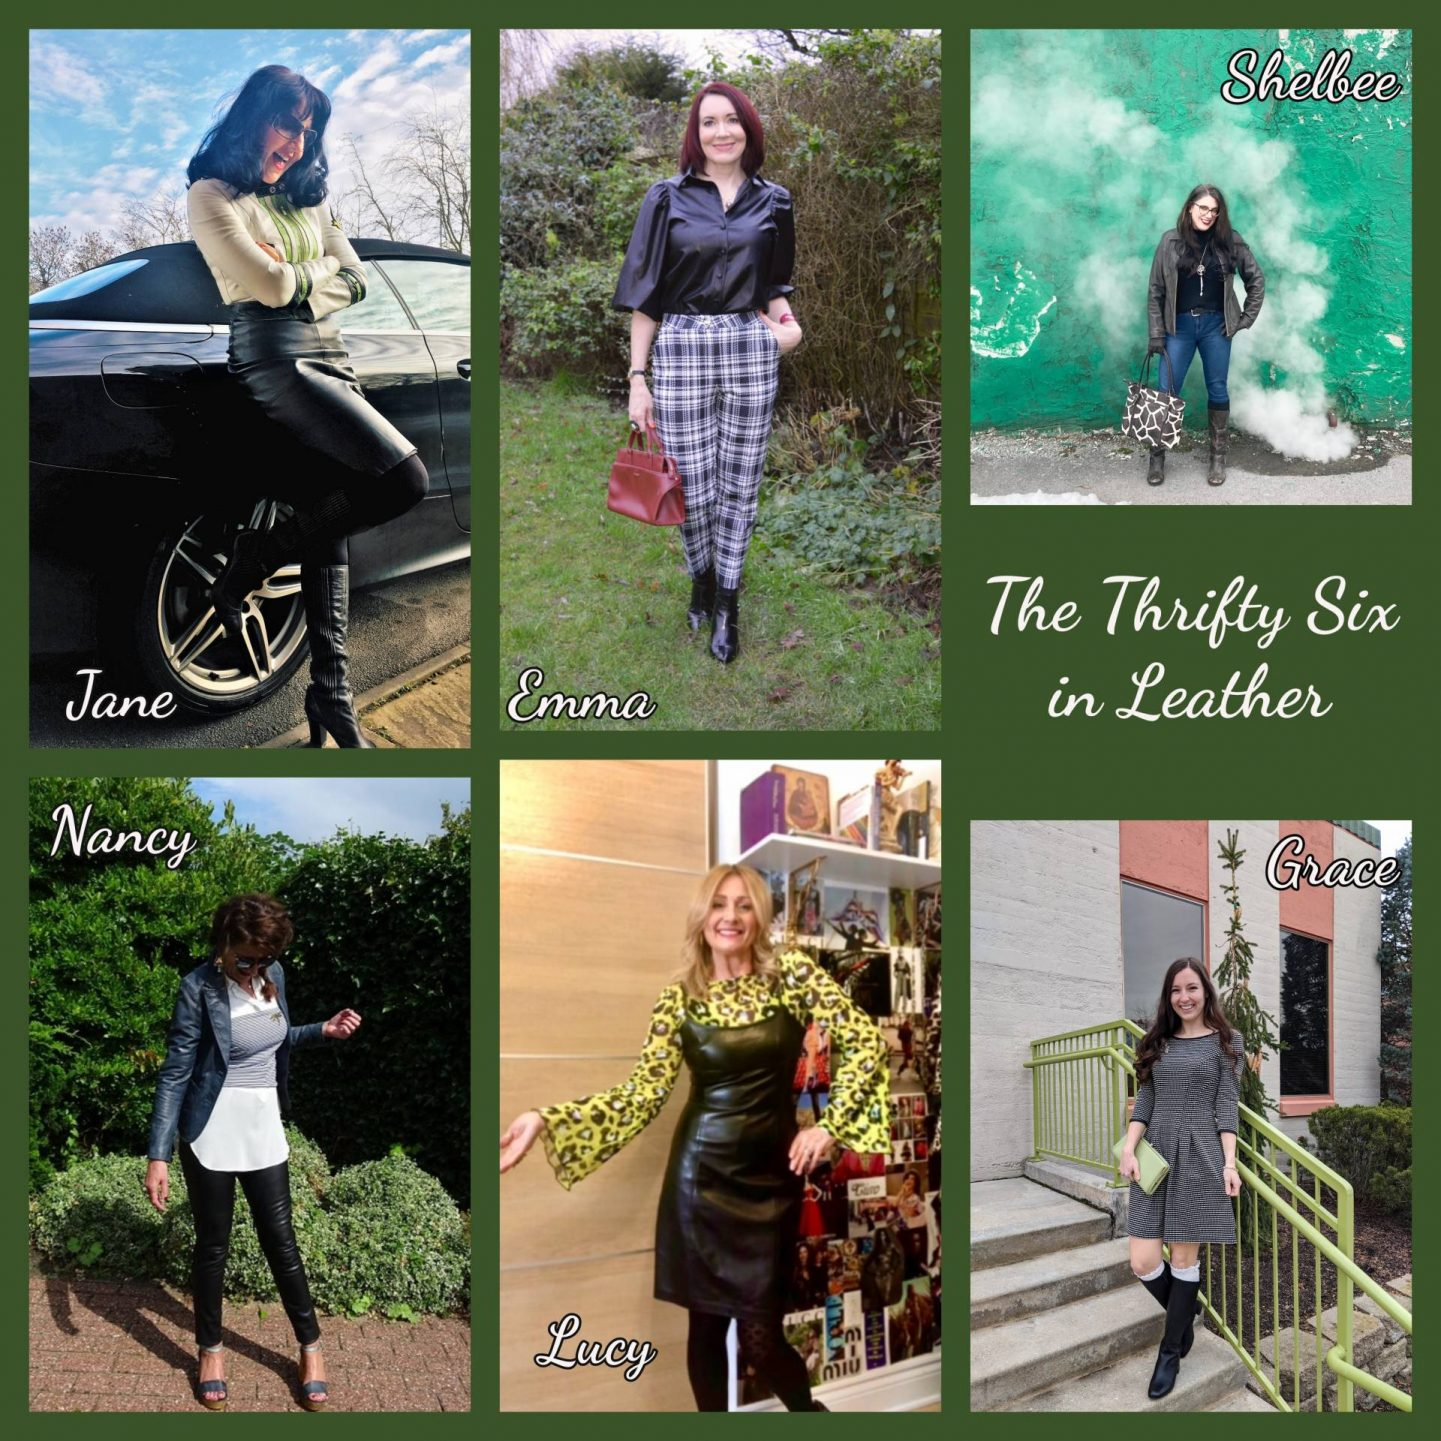 Styling Leather and Pleather - January's Thrifty Six Collaboration collage